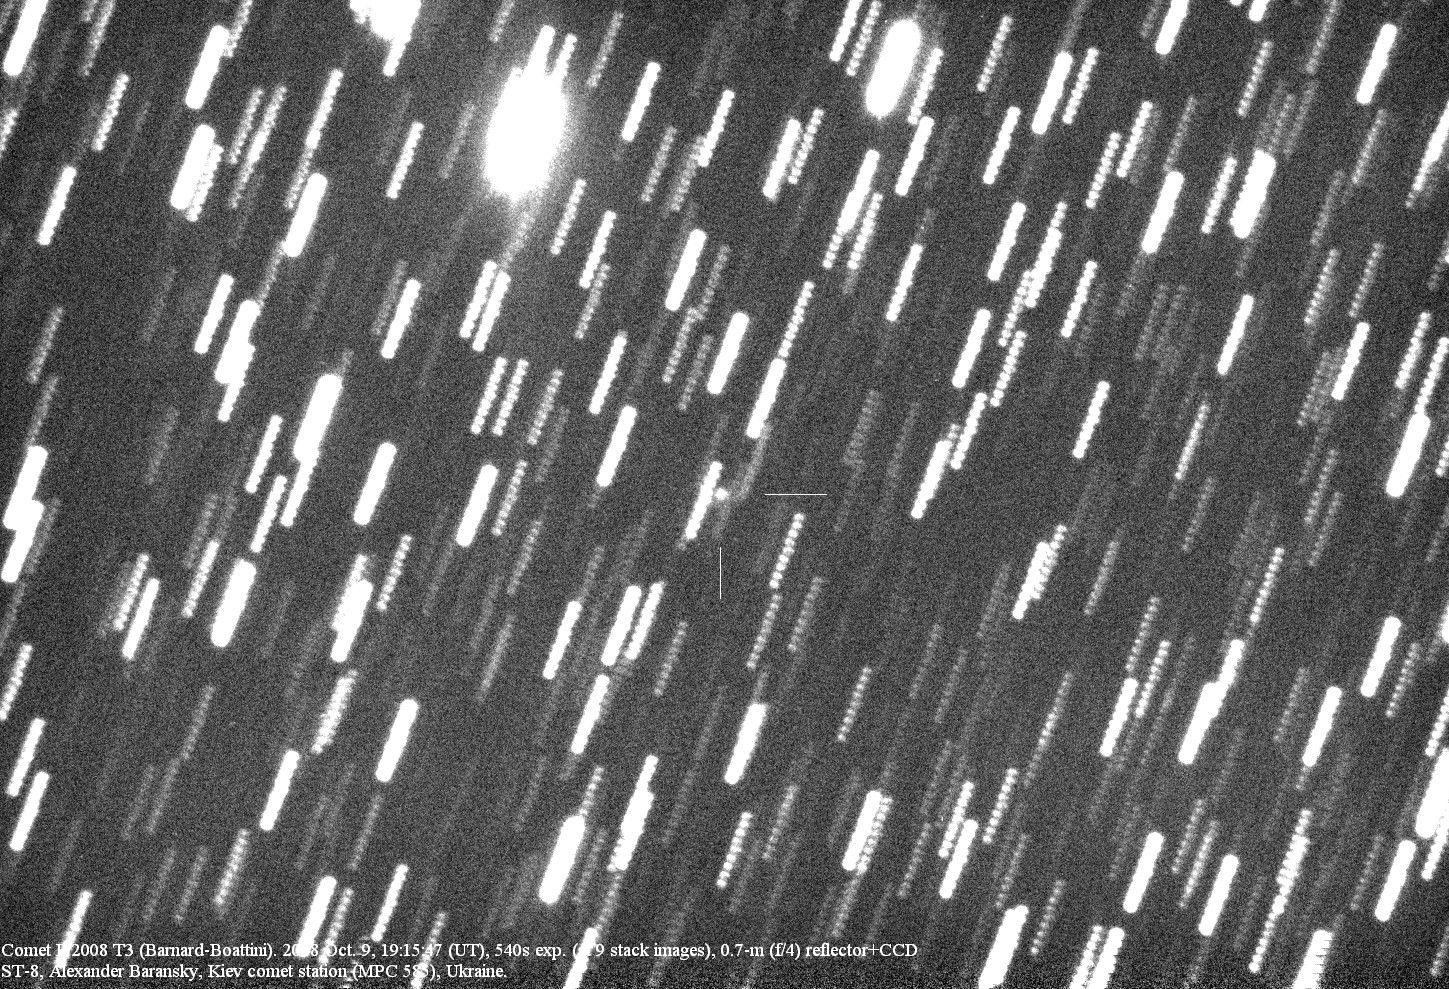 October 13, 1892: First Comet Discovered by Photograph